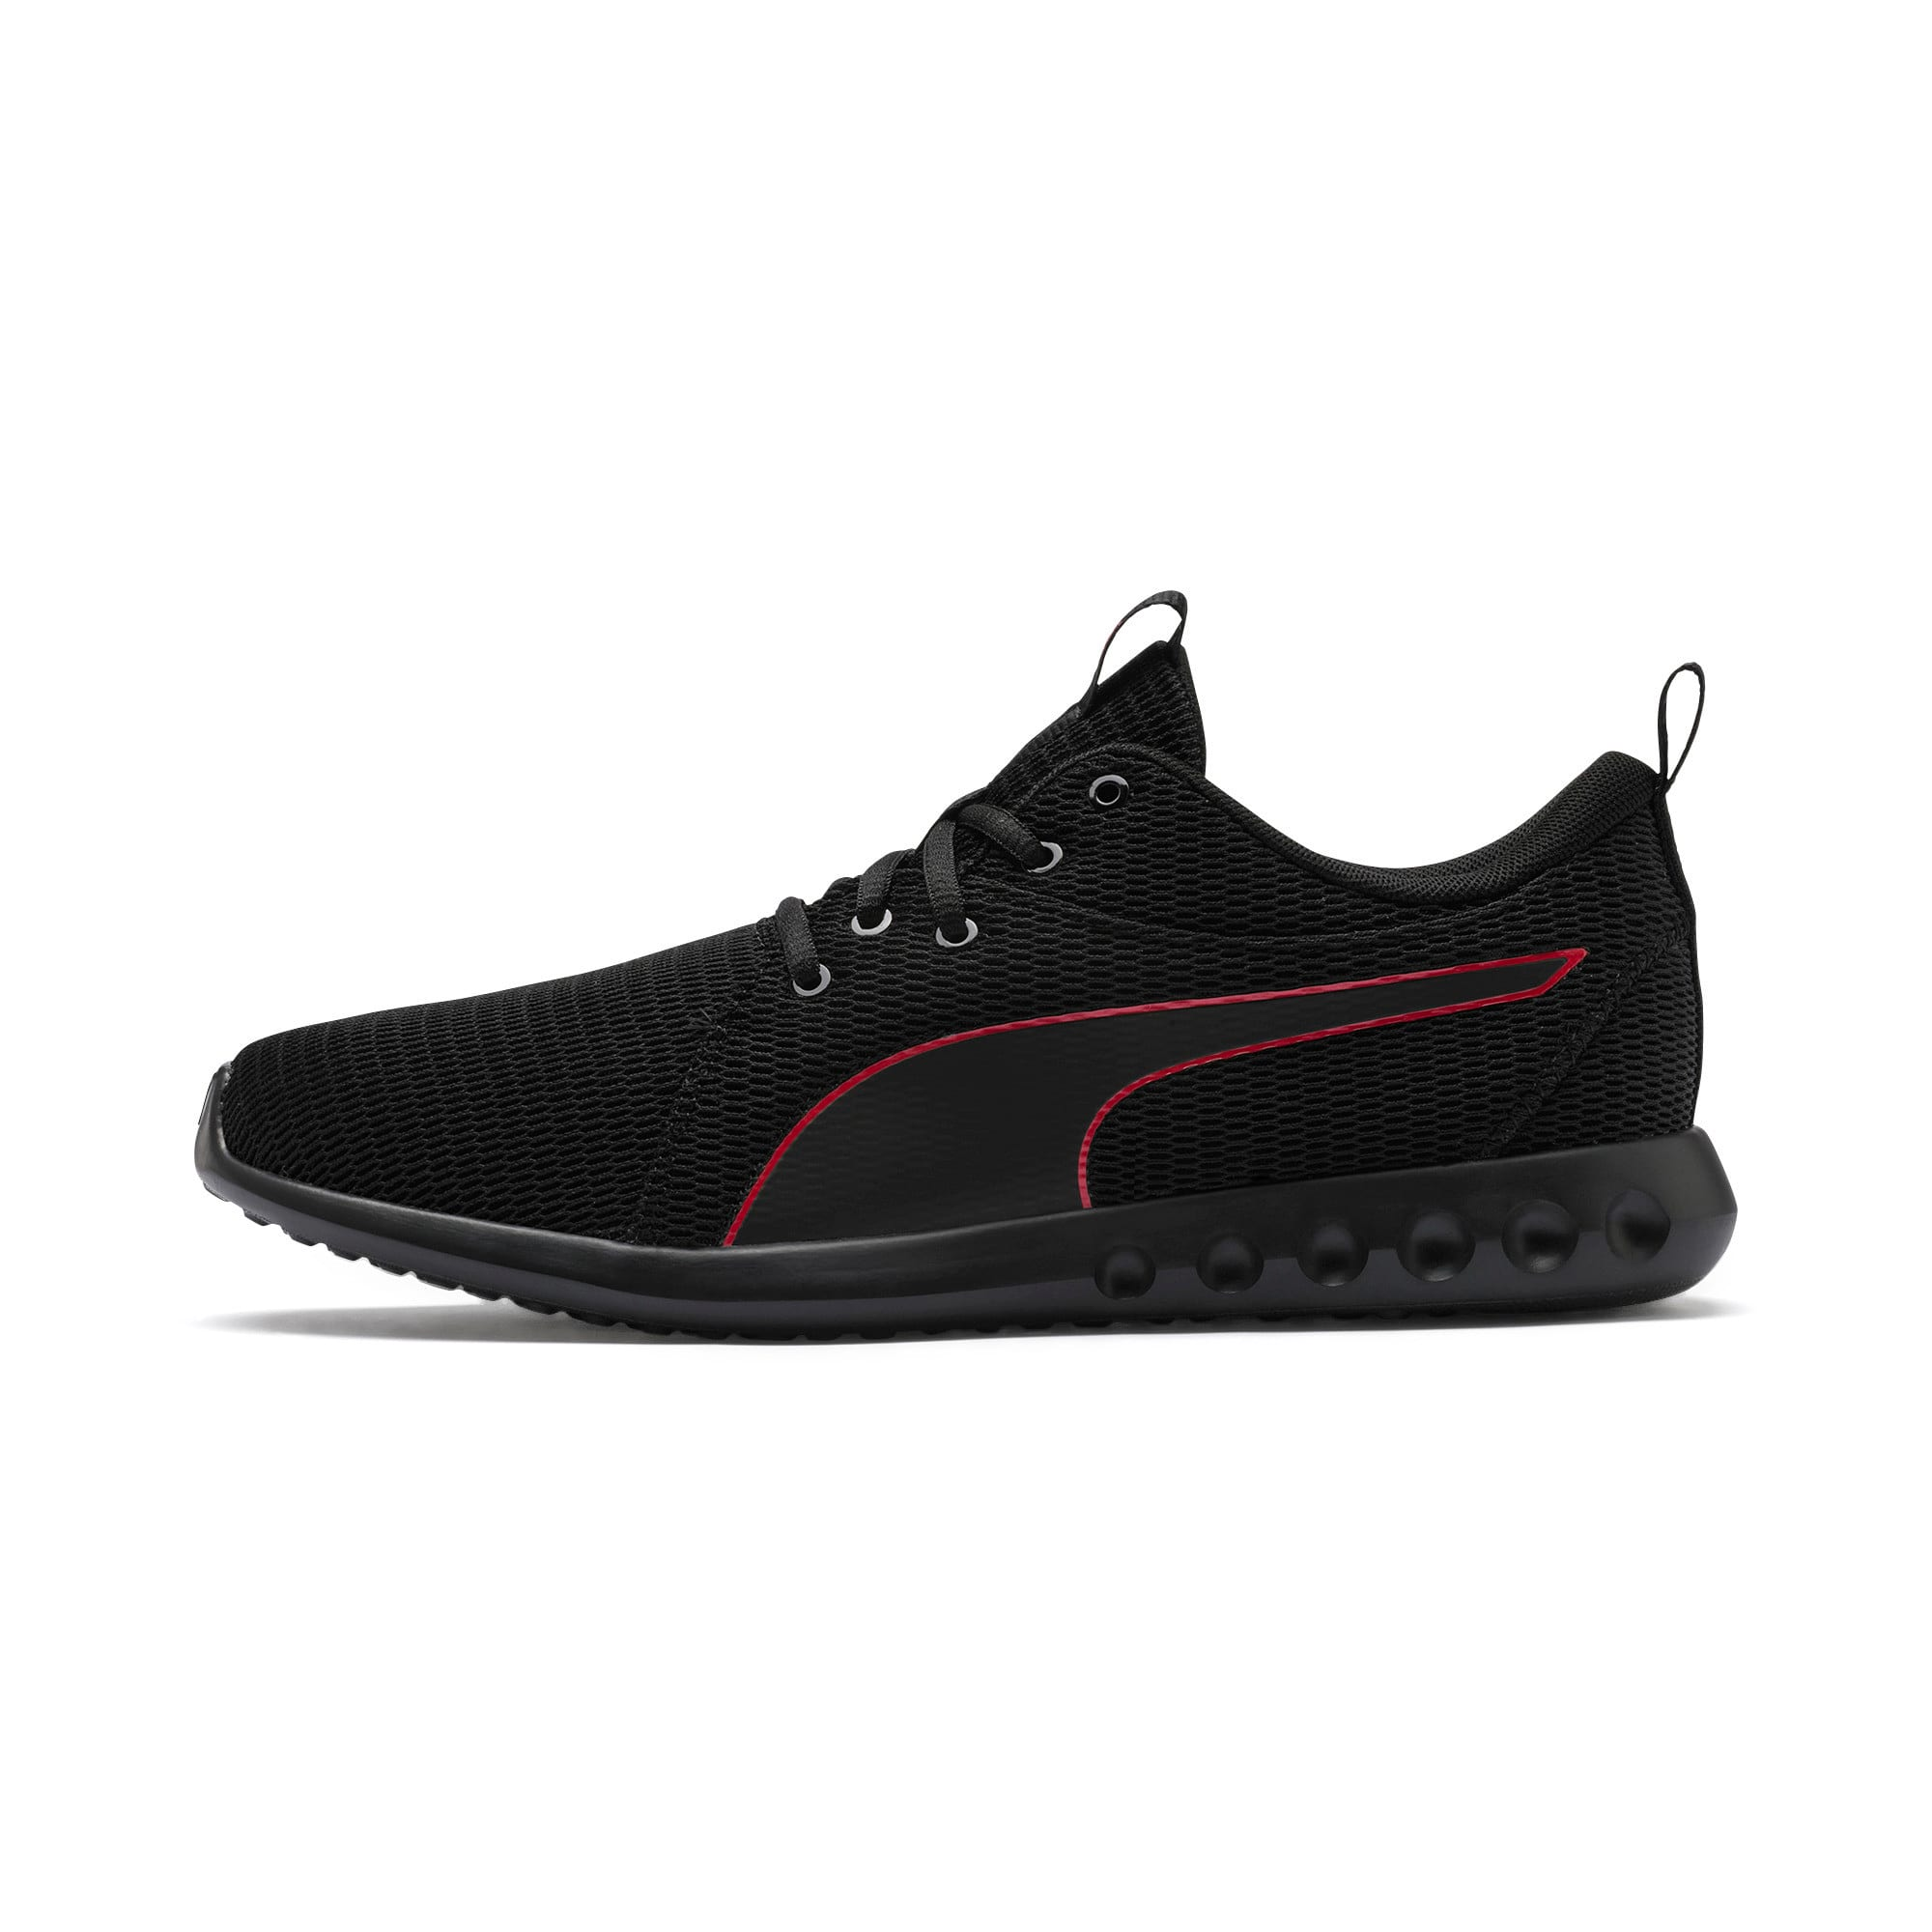 Thumbnail 1 of Carson 2 New Core Men's Running Shoes, Puma Black-High Risk Red, medium